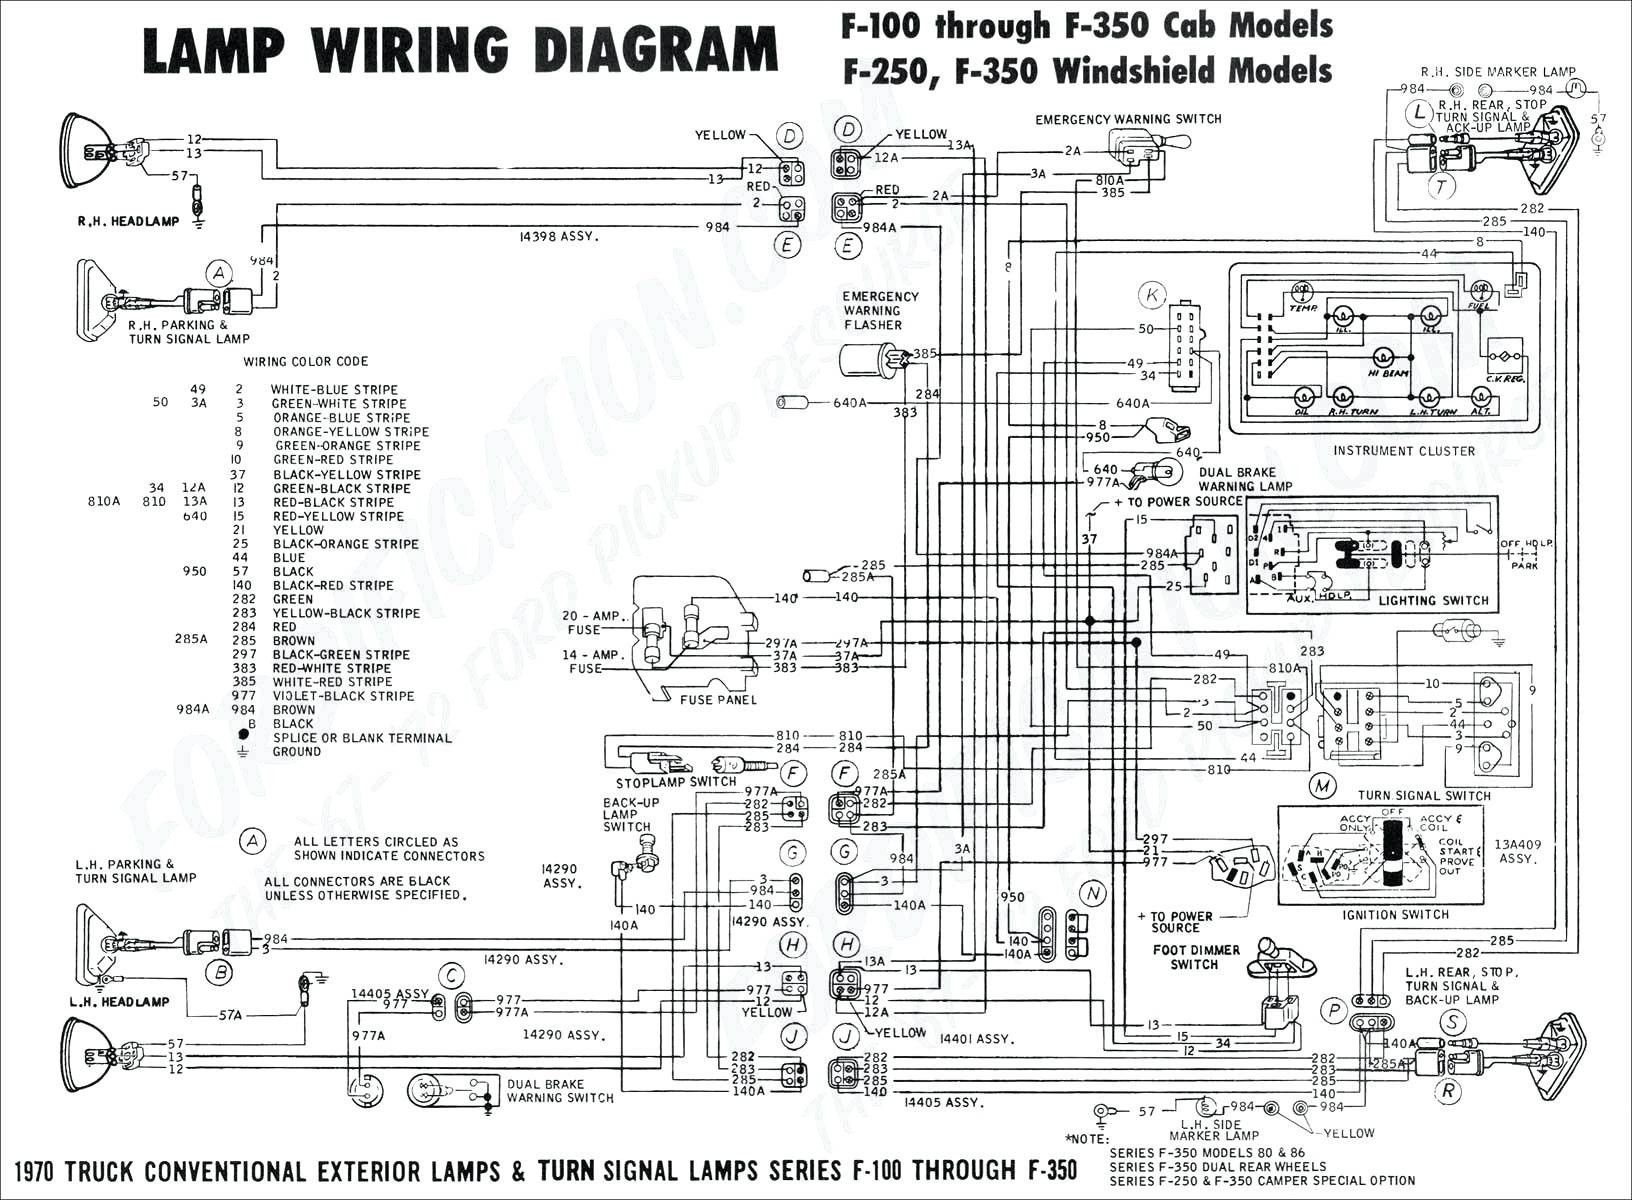 Ford Proportioning Valve Diagram Trailer Wiring Diagram Electrical Wiring Diagram Circuit Diagram